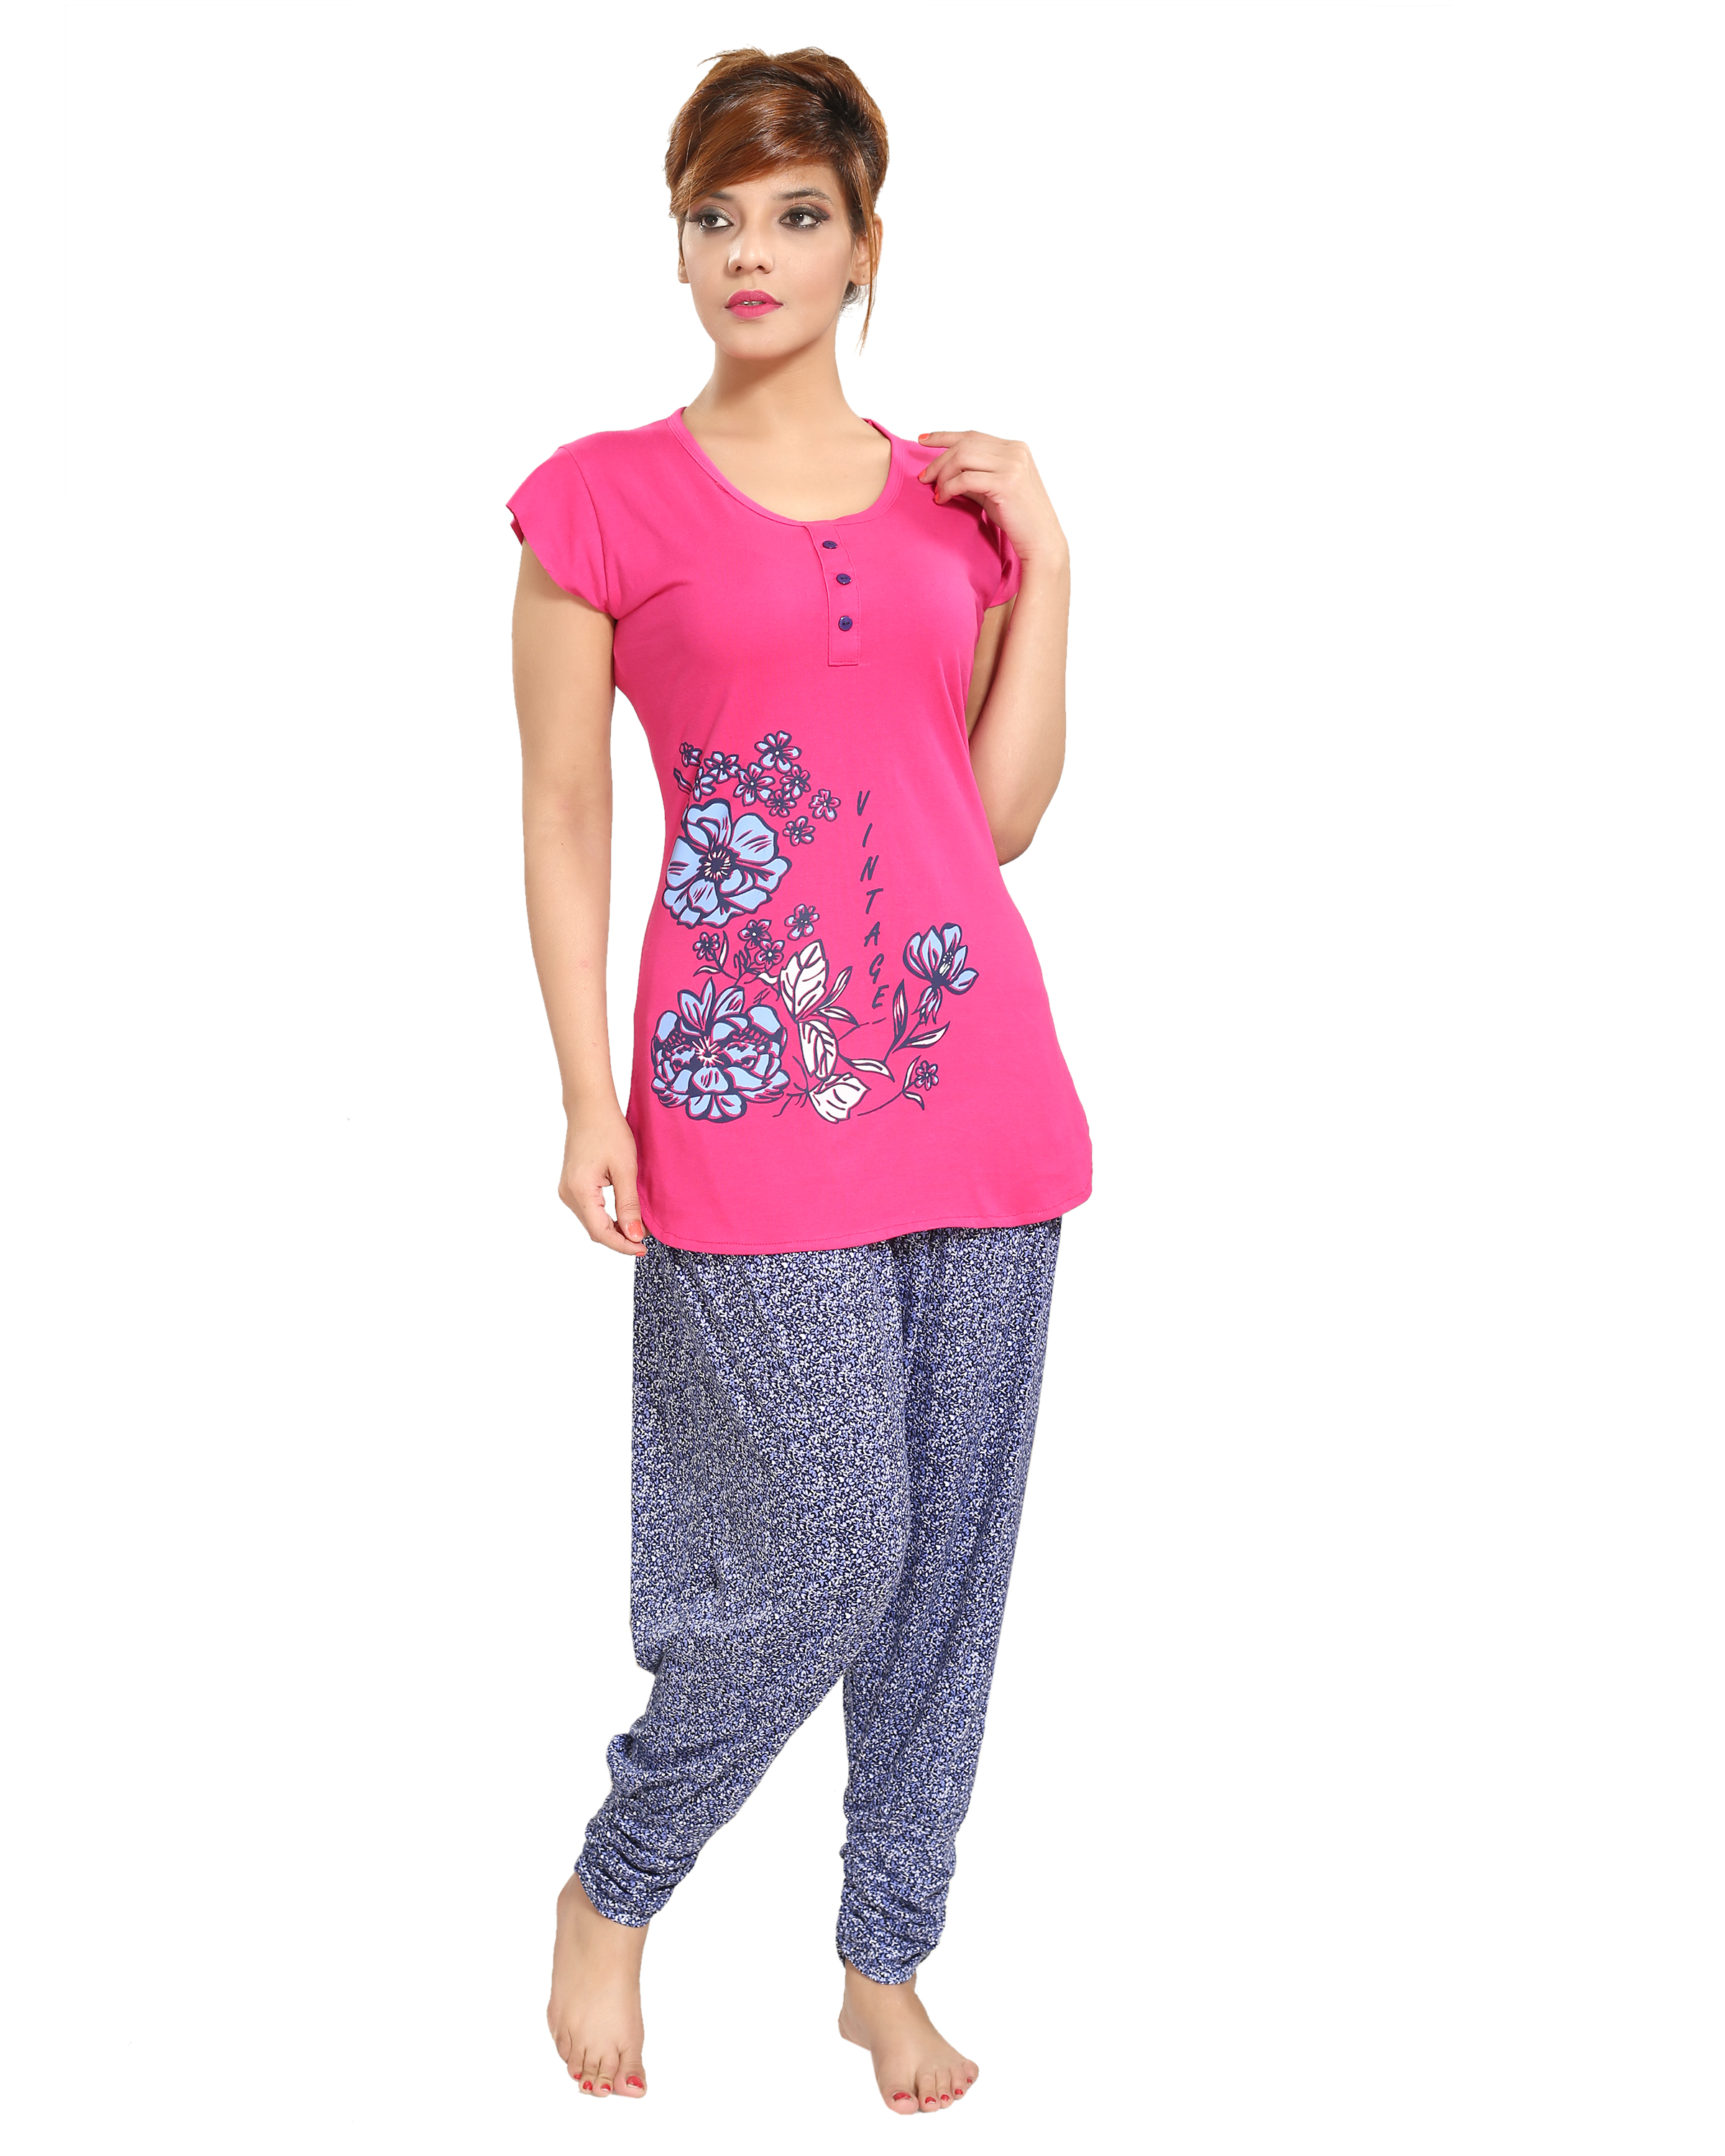 fbf2270ae4 Pink cotton night dress. Set of pyjama and Tshirt. - muhenera s - 2426823